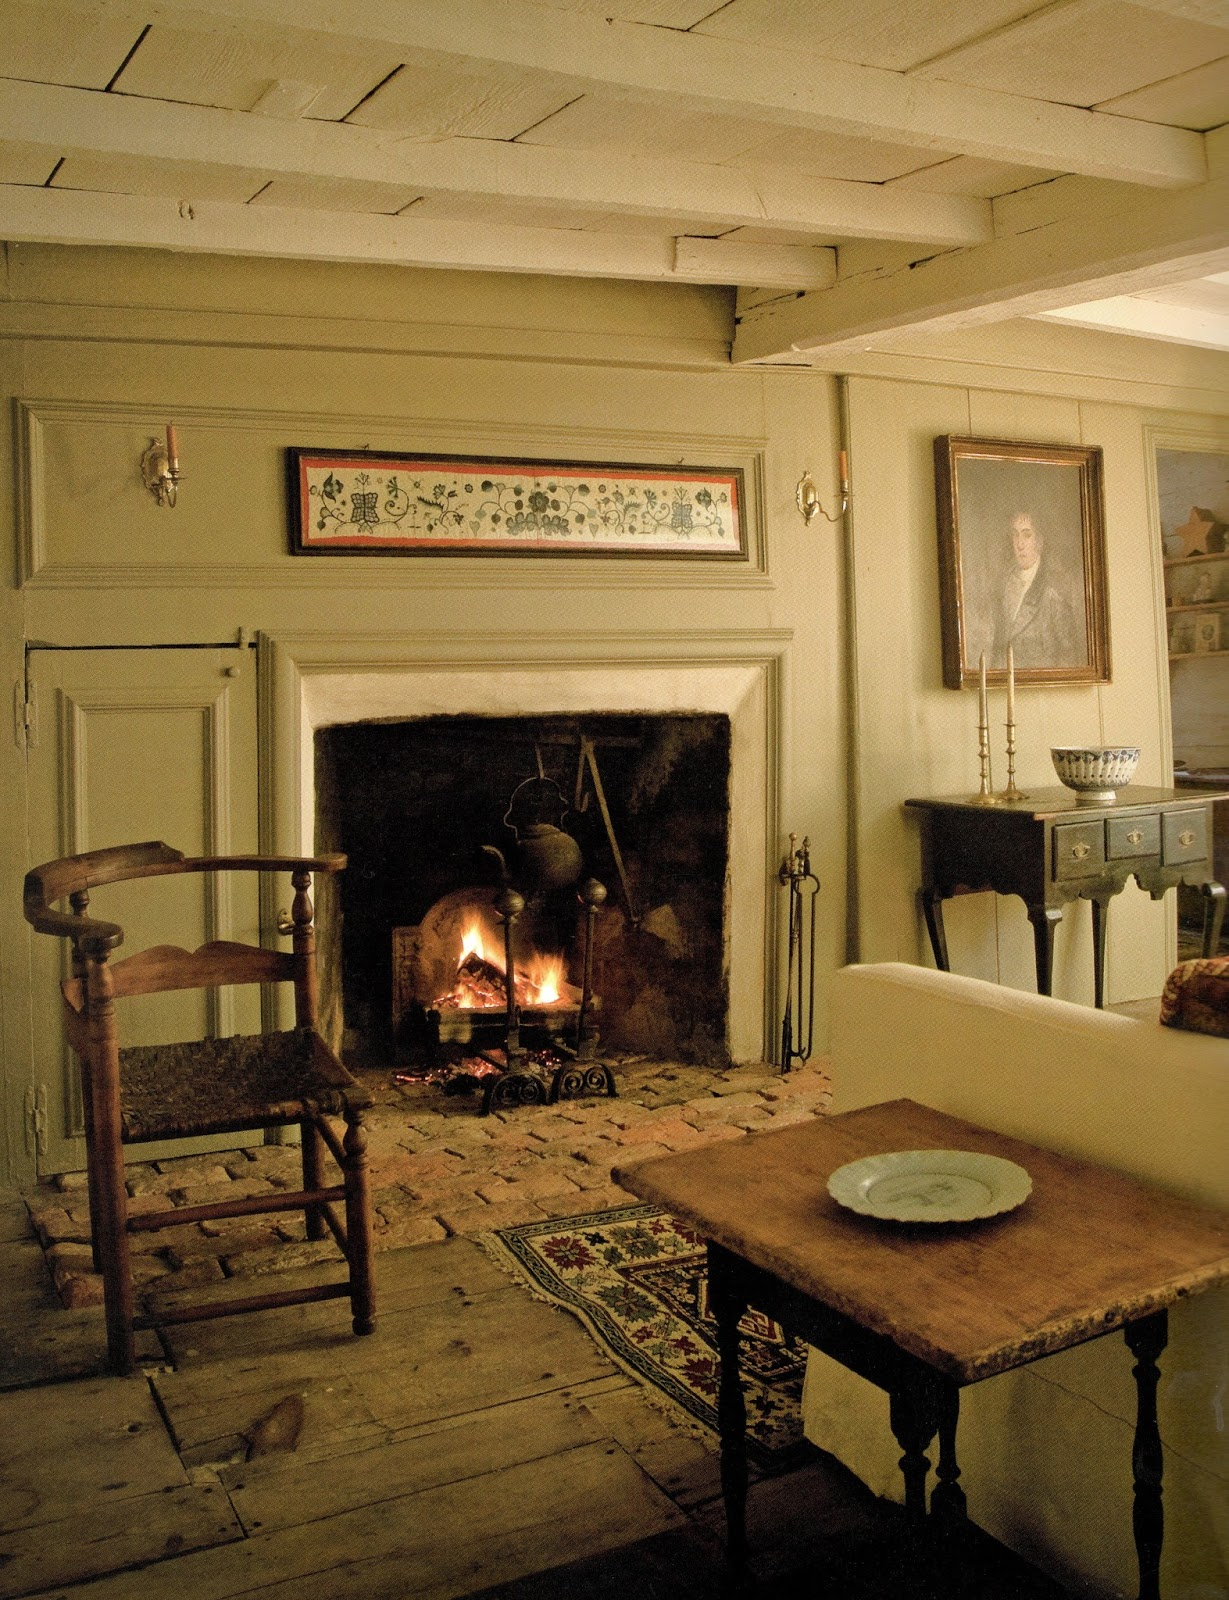 antique houses of gloucester and beyond